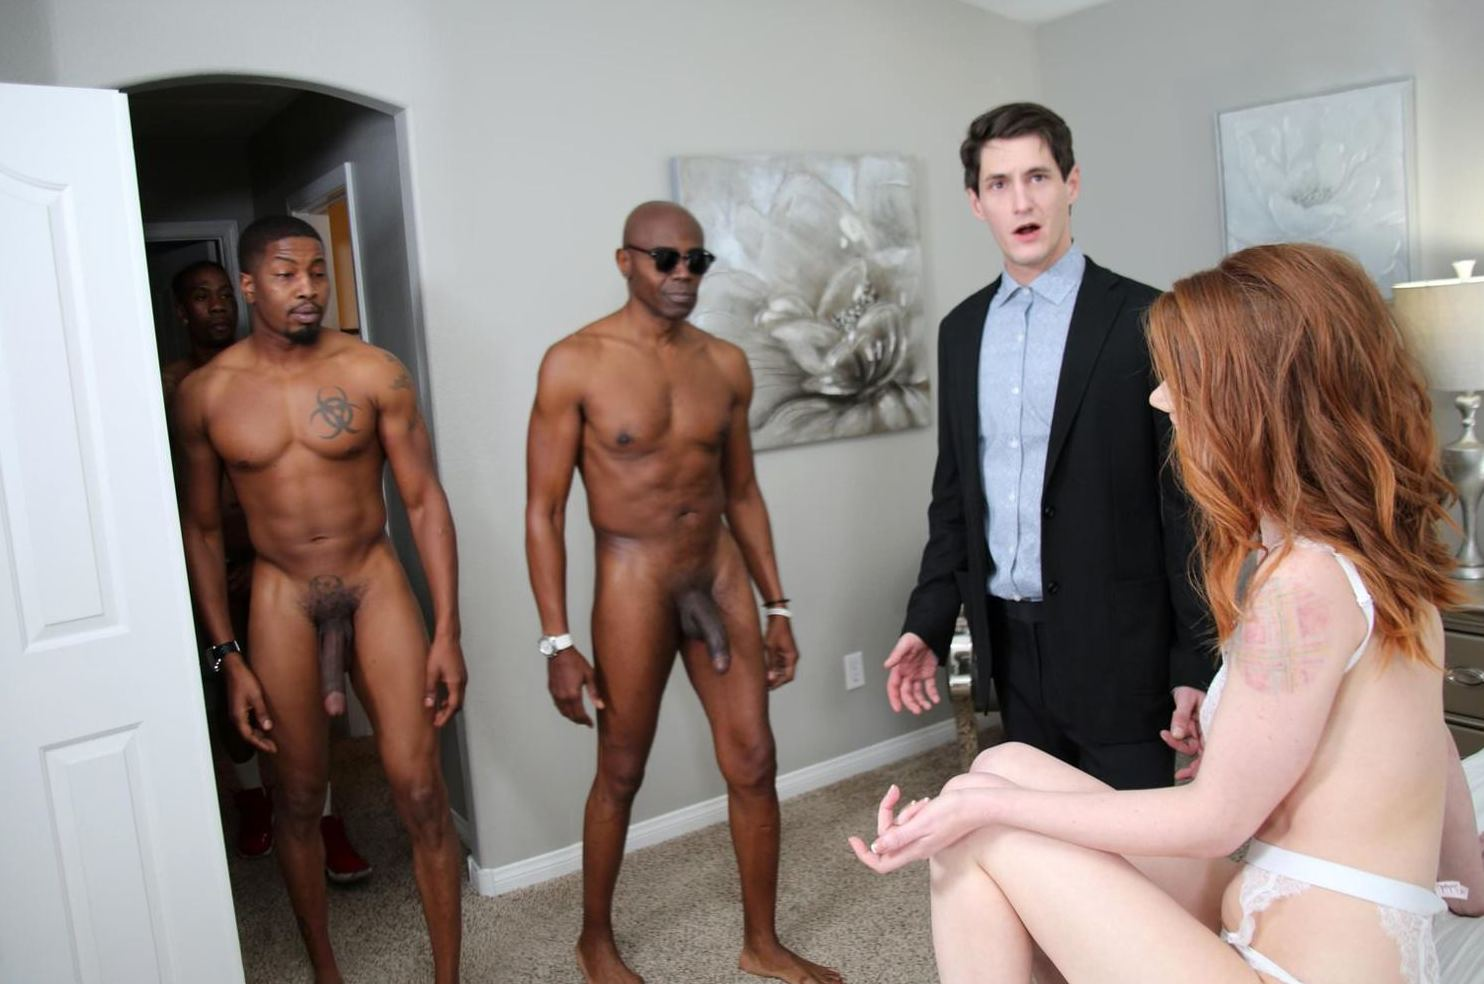 Cuckold Sessions